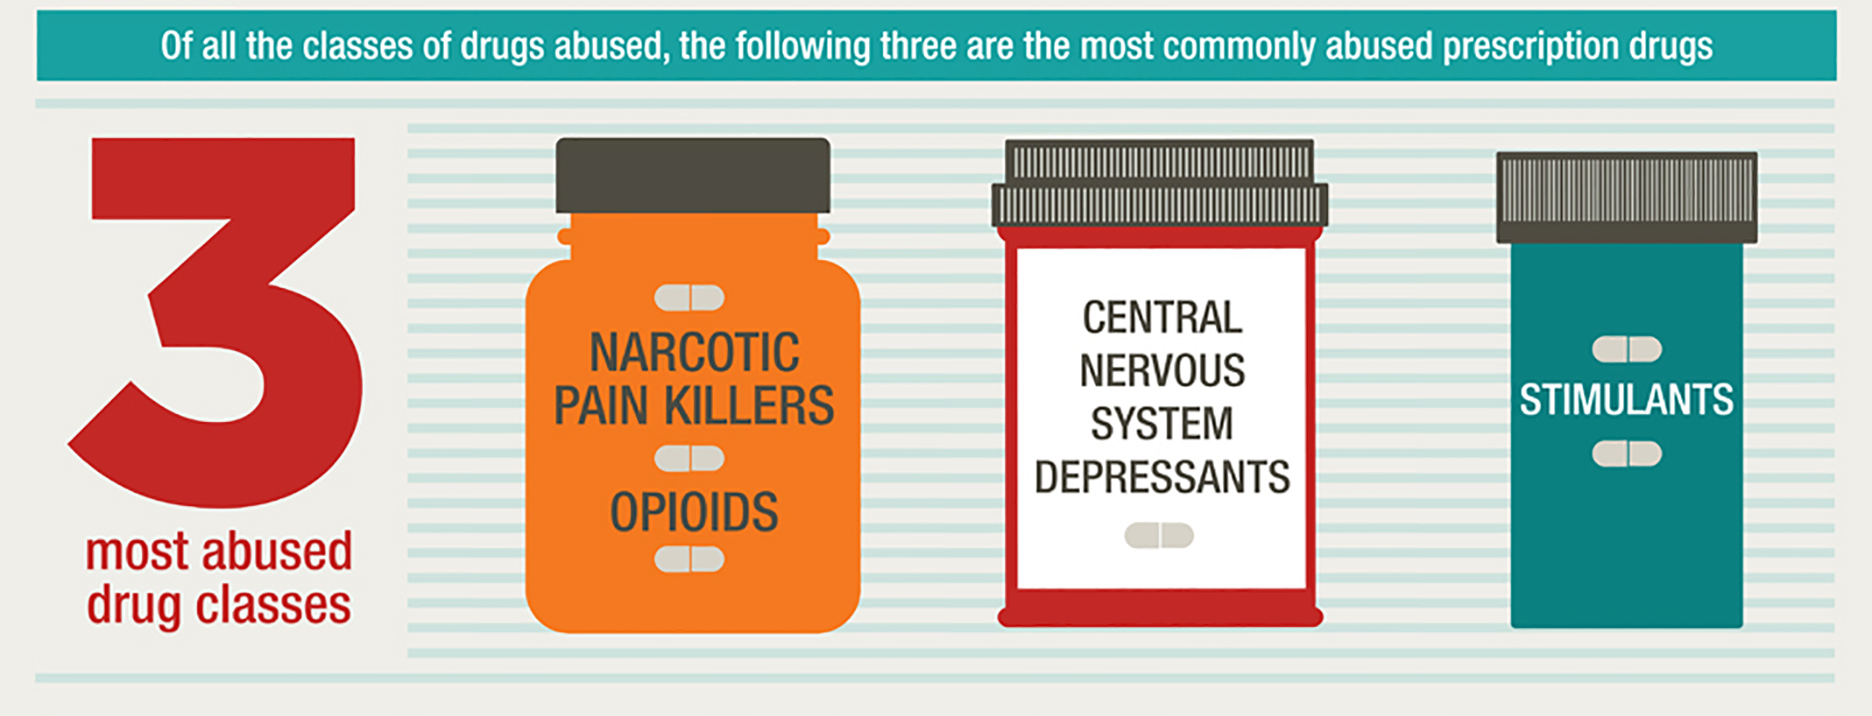 Straight No Chaser Facts About Drug Misuse And Overdose